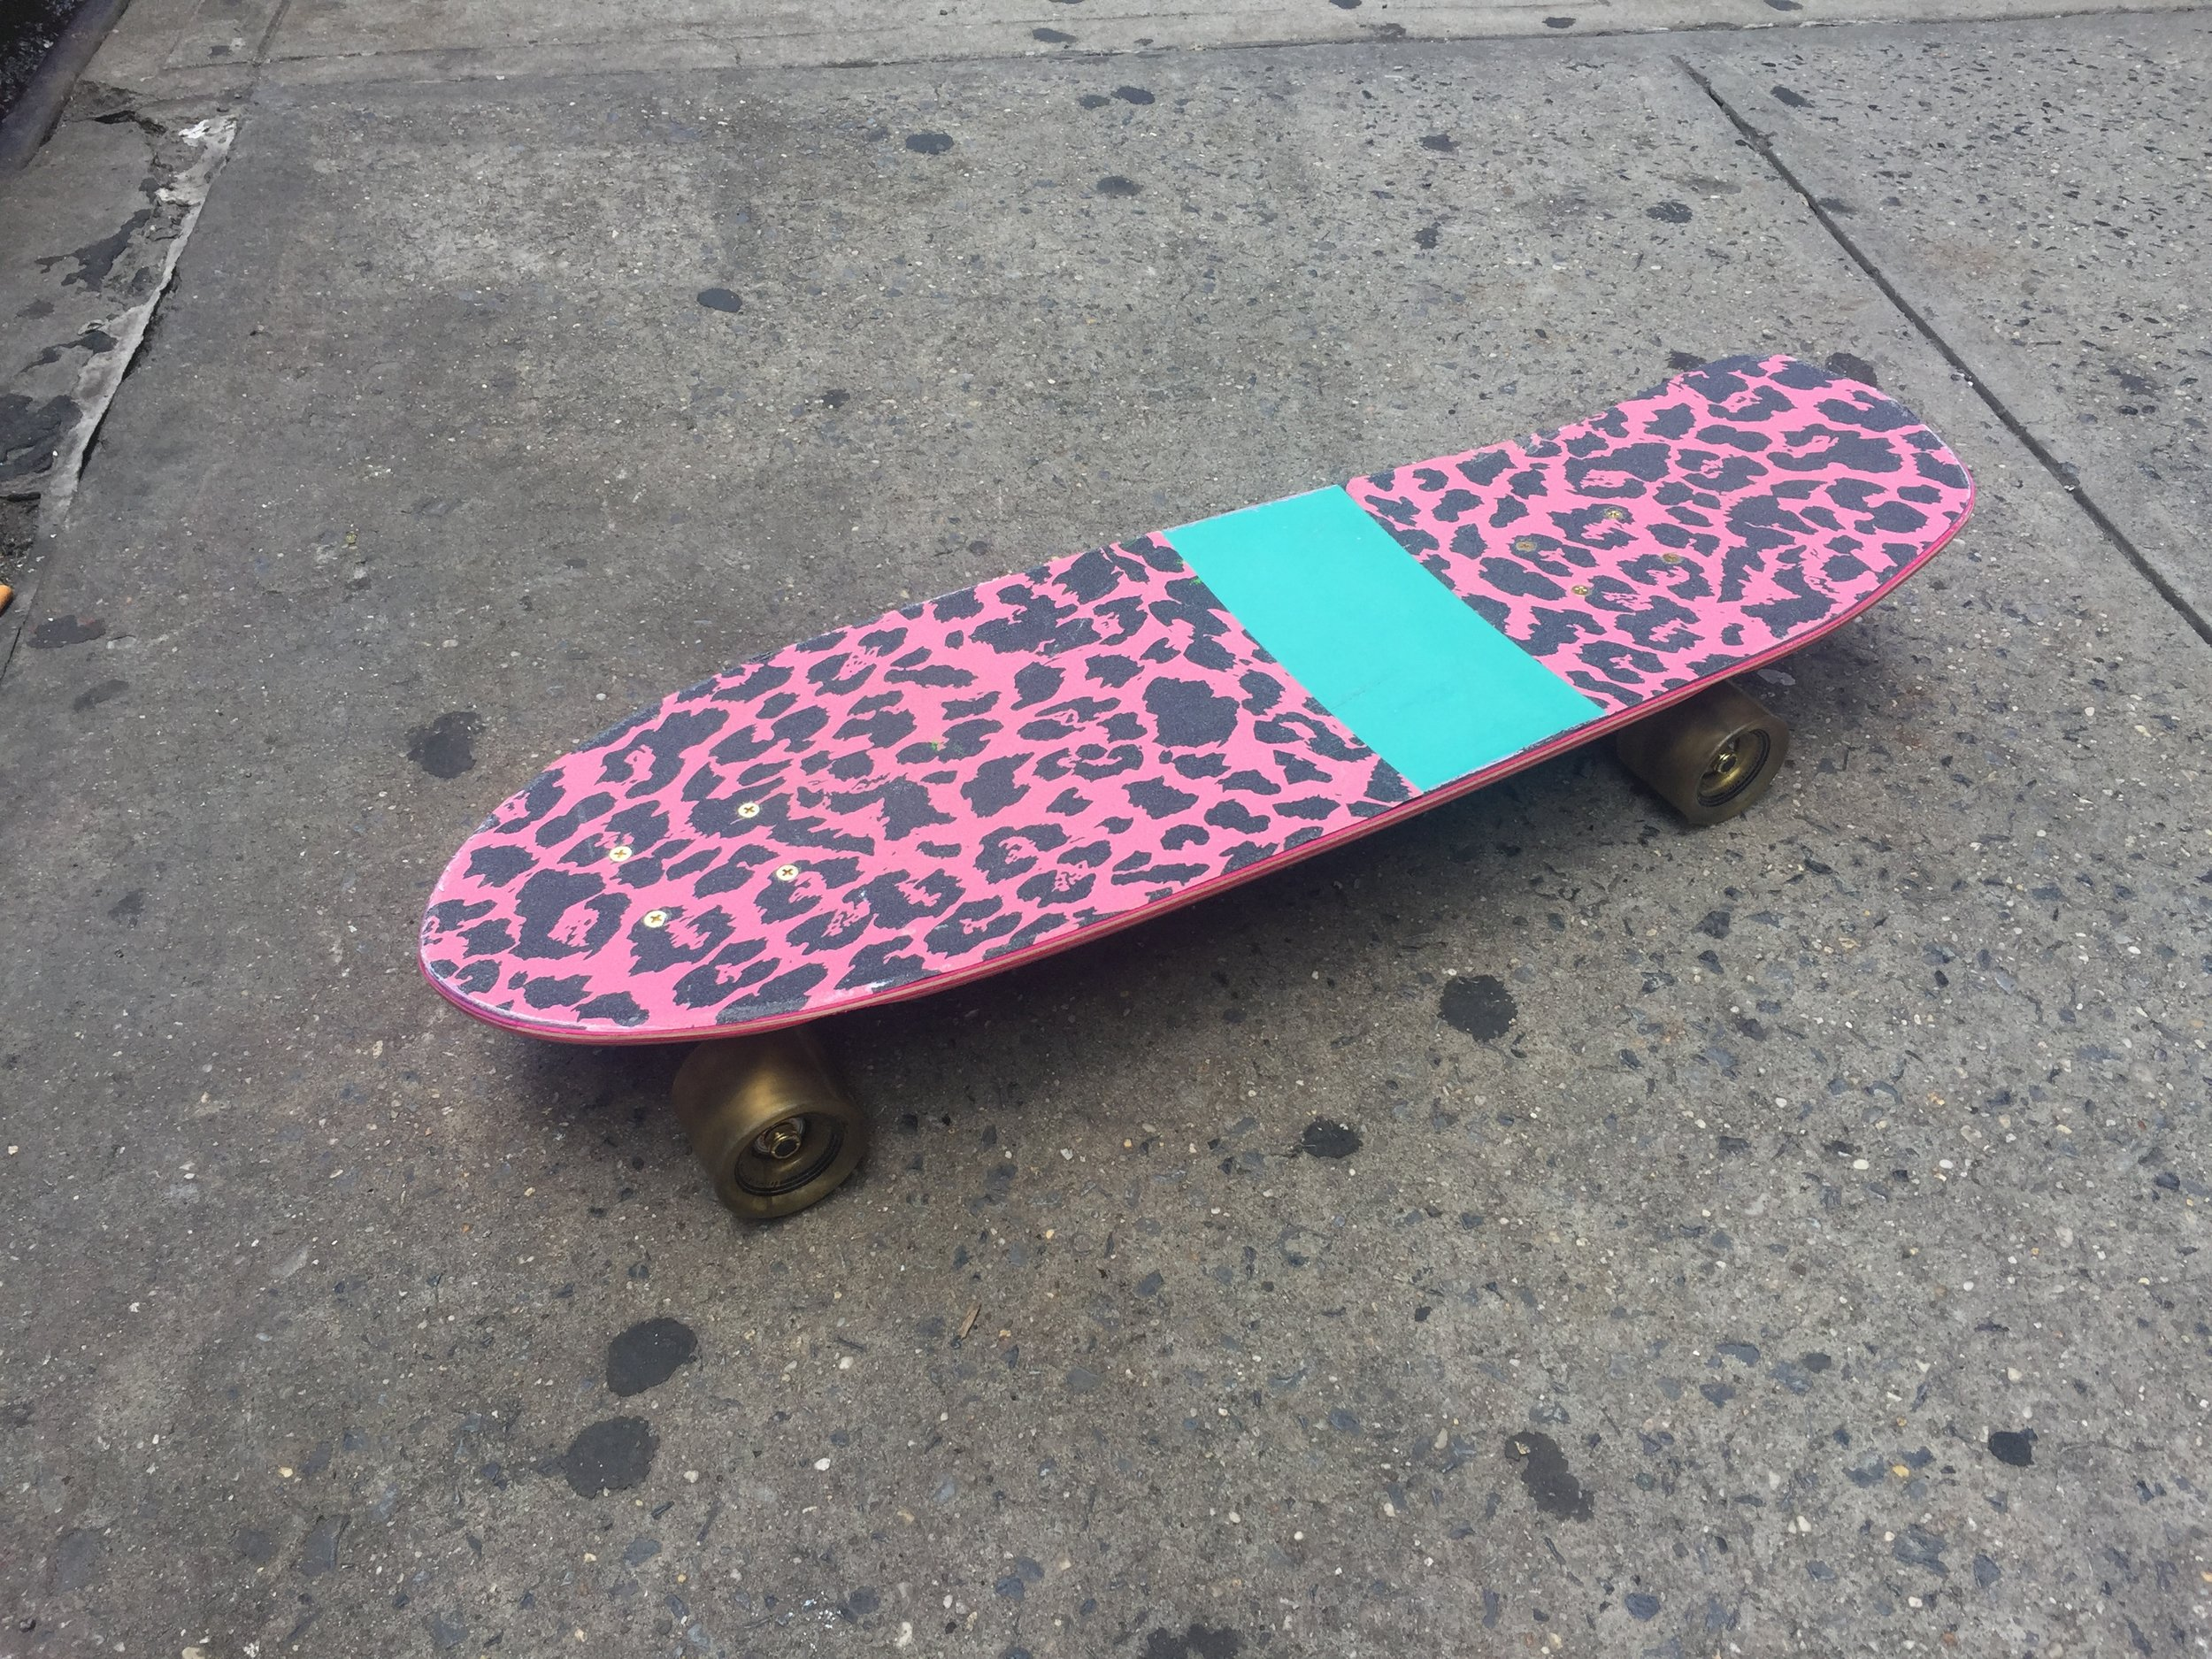 SKATEBOARDS - Vintage, new and royalty free.